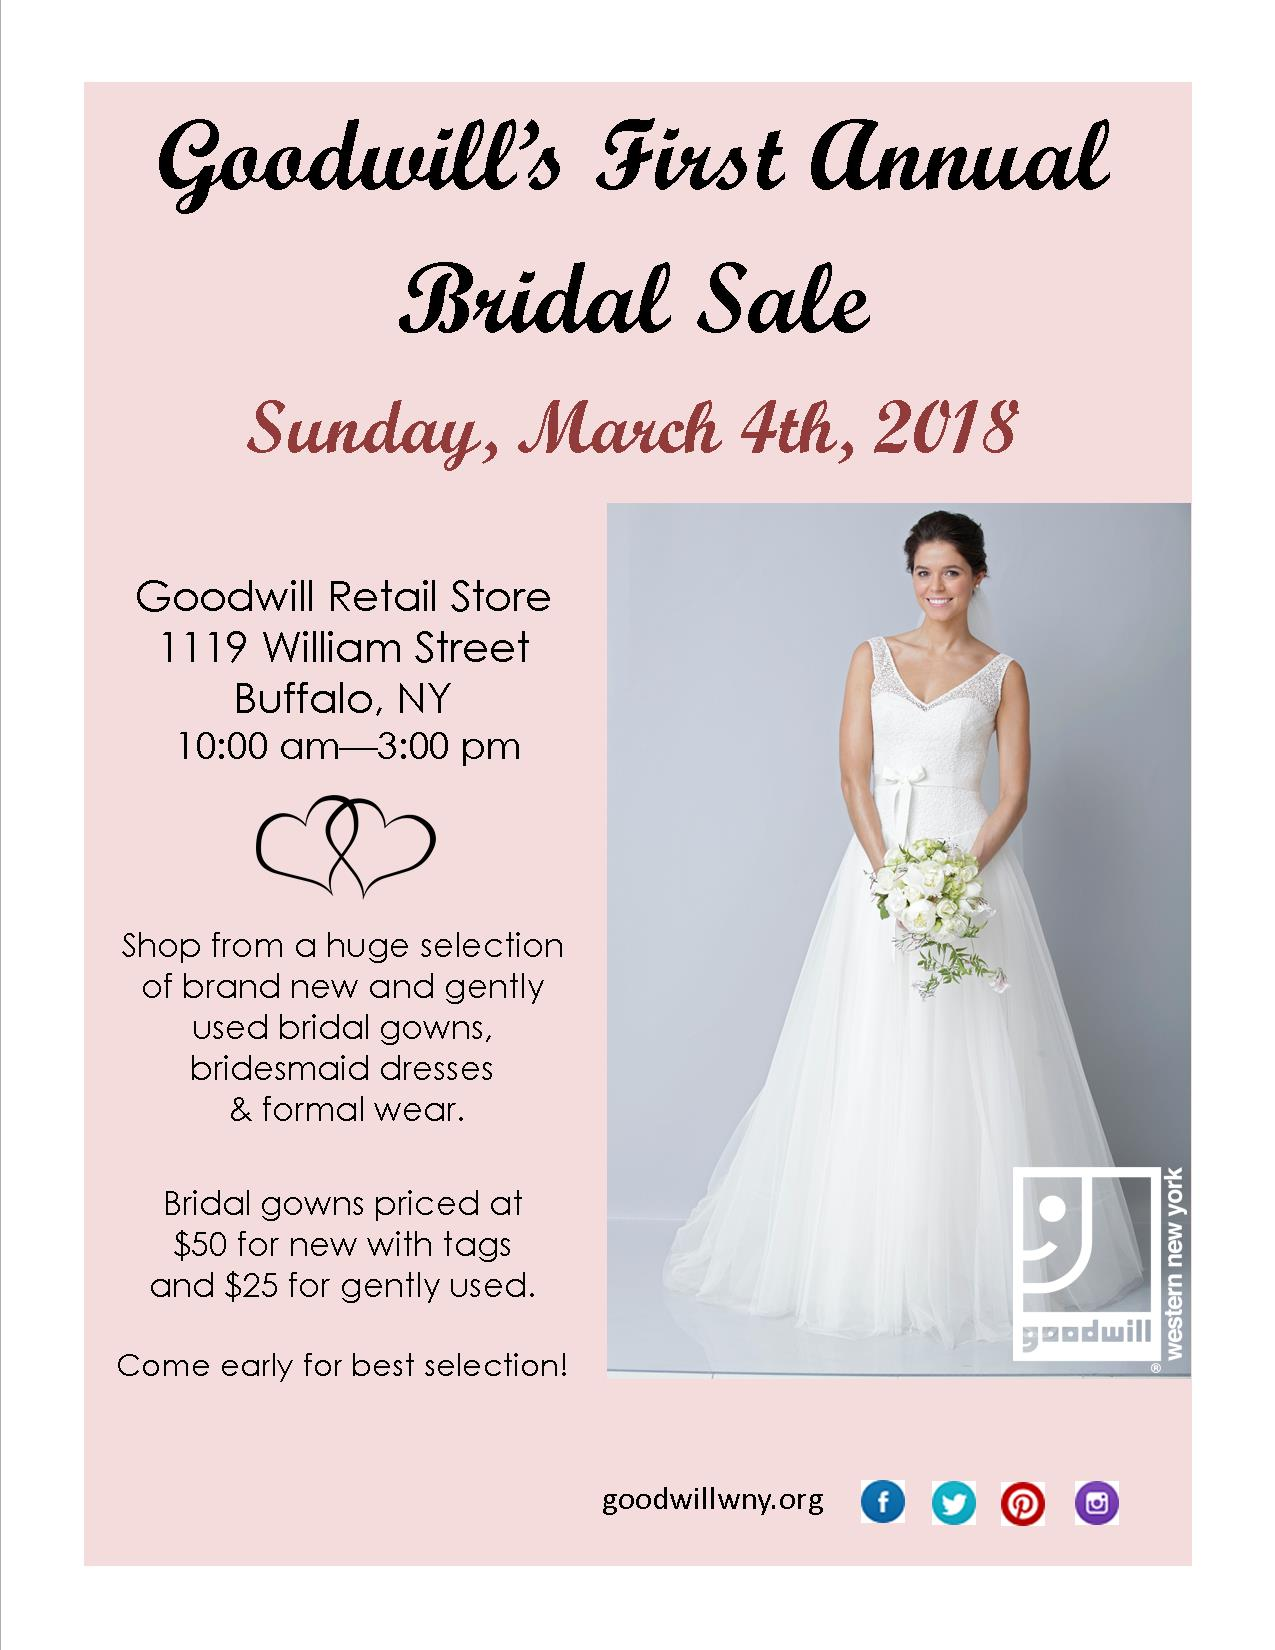 Goodwill To Hold First Annual Bridal Sale Goodwill Of Western New